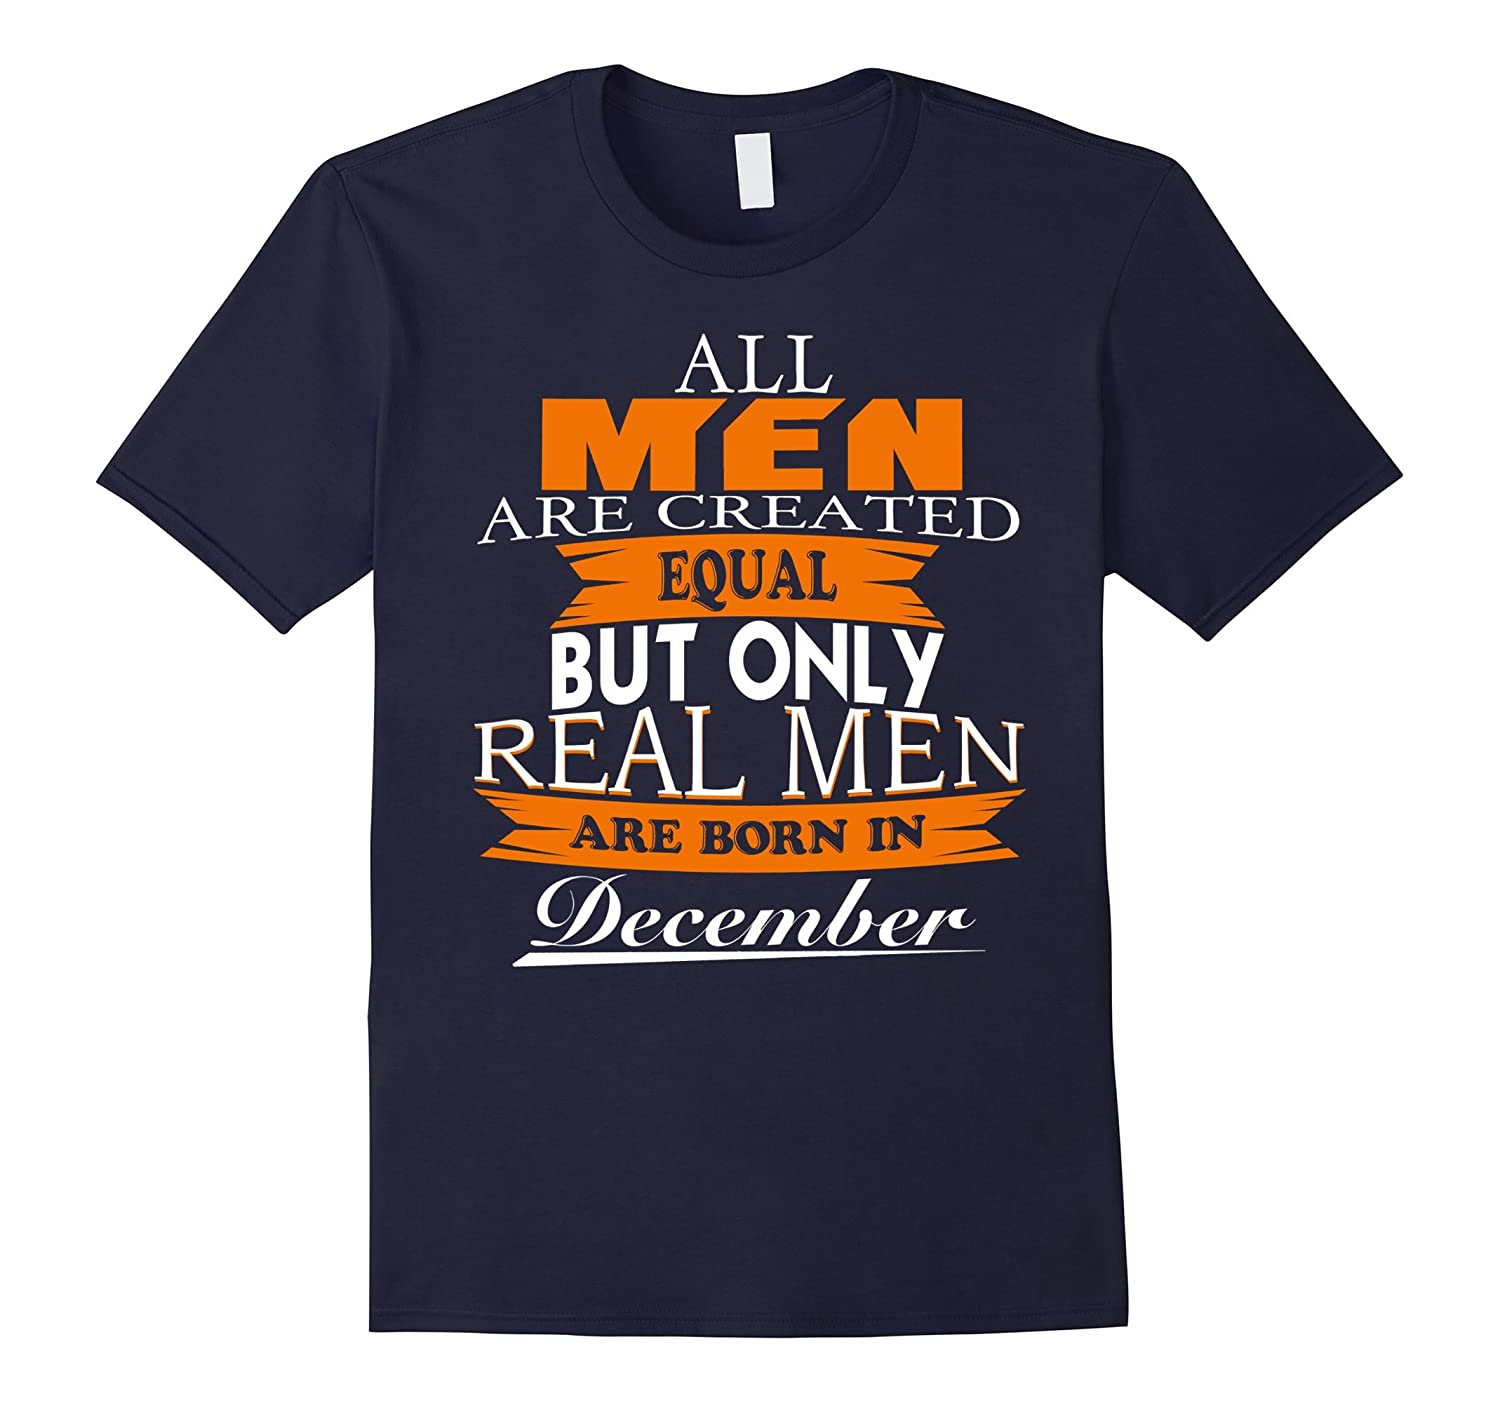 All Men Are Created Equal – Real Men Are Born in December